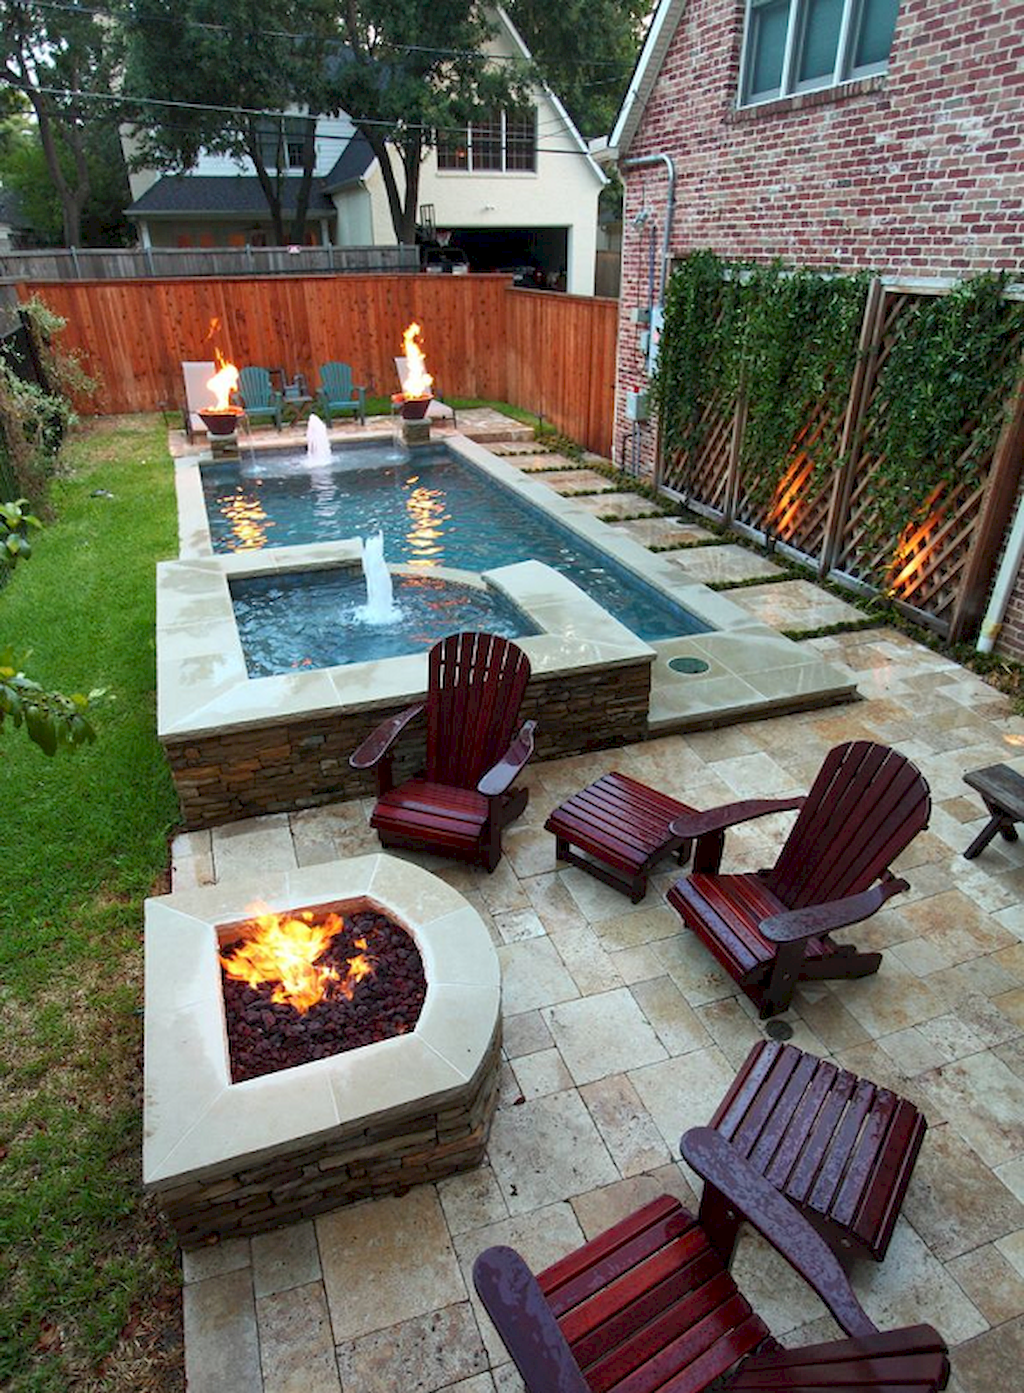 65 gorgeous small backyard landscaping ideas in 2020 on gorgeous small backyard landscaping ideas id=60297